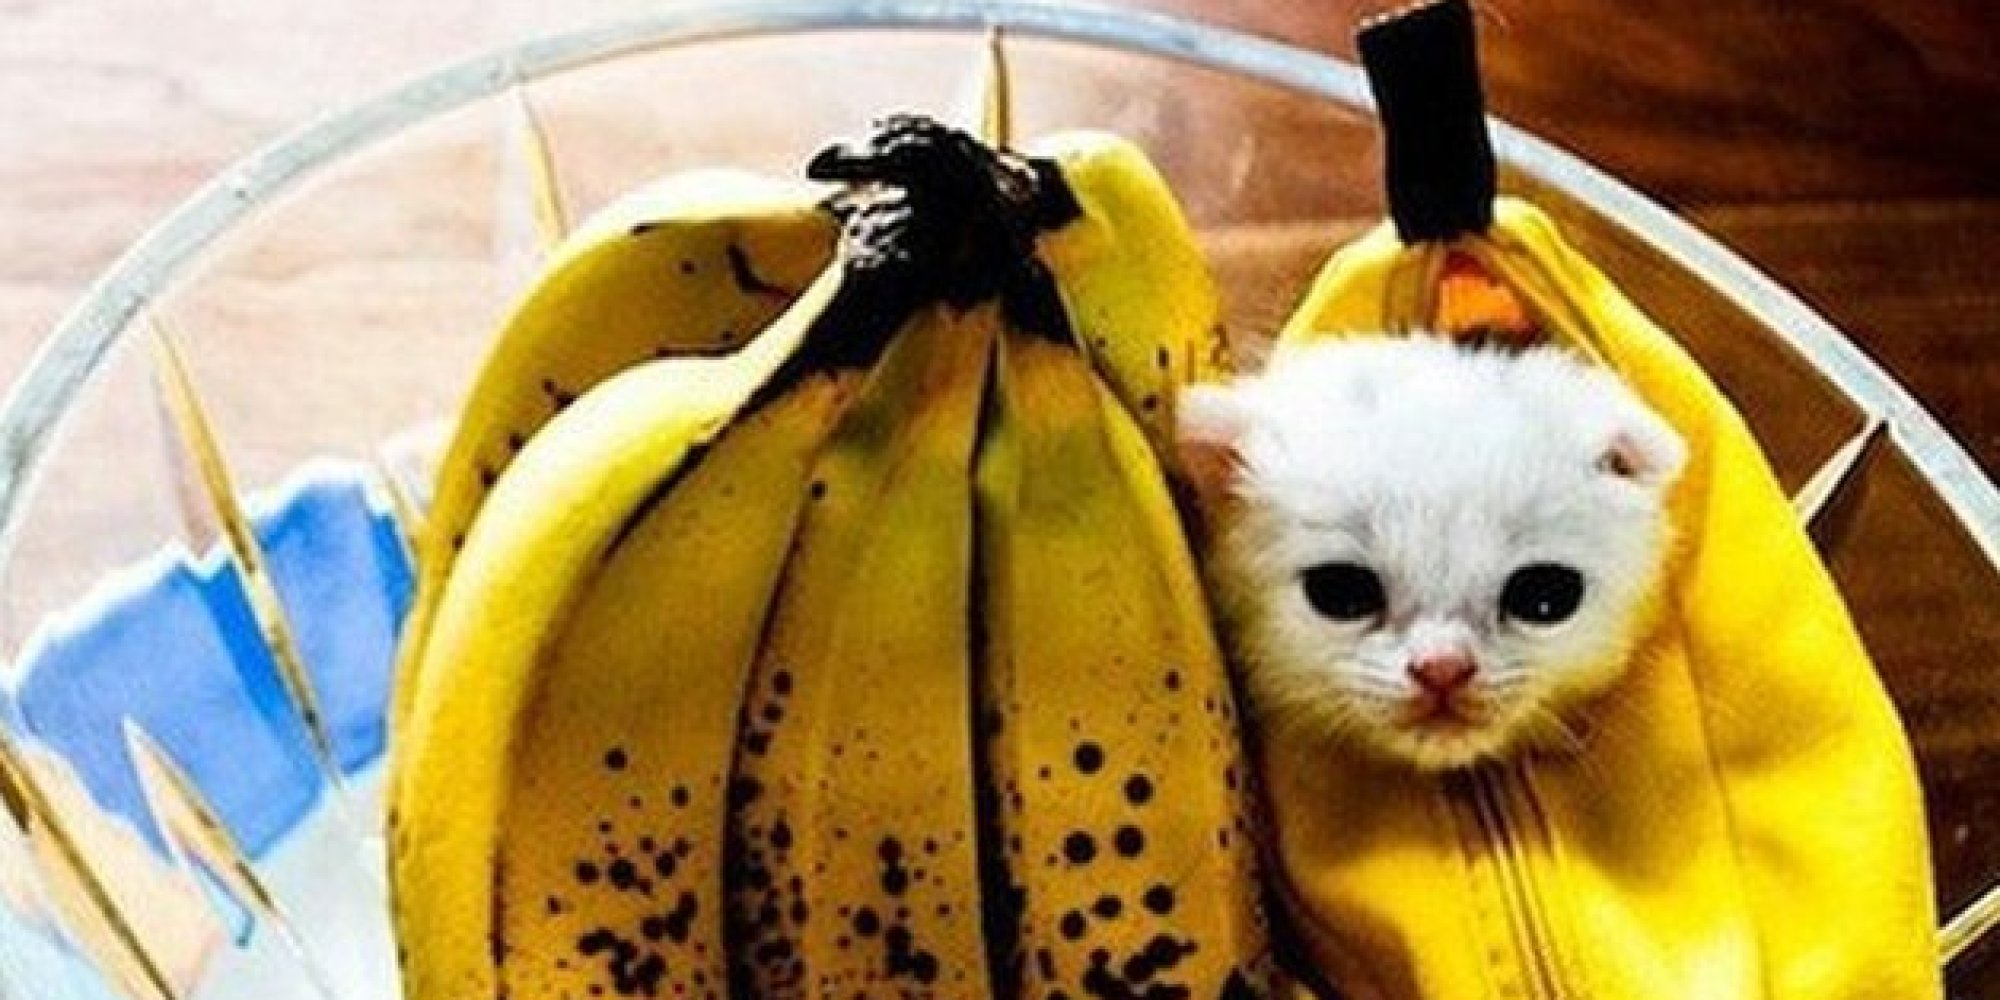 25 pet halloween costumes that are so cute we cant even huffpost - Halloween Costumes For Kittens Pets